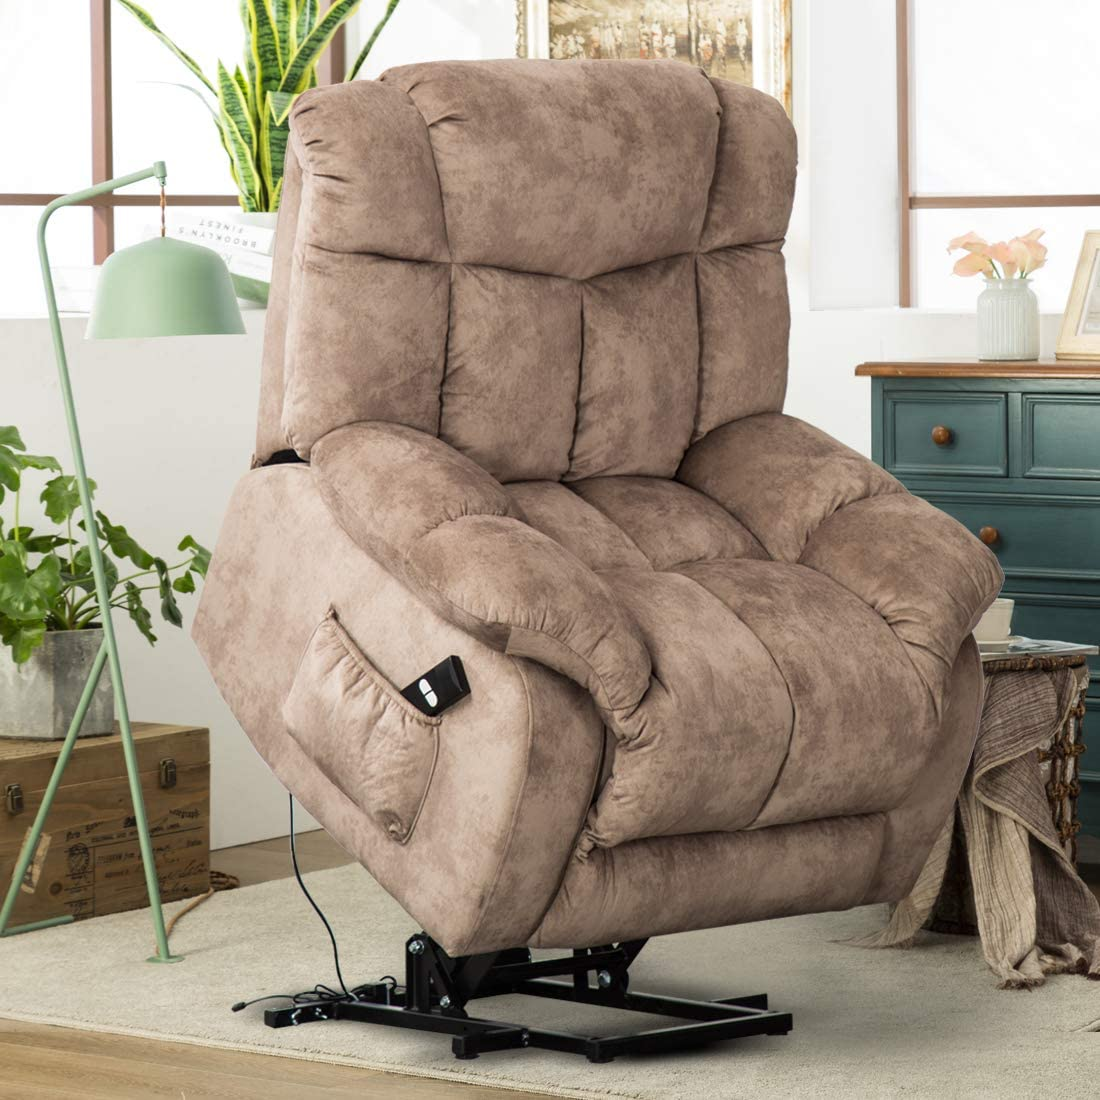 CANMOV Power Lift Recliner Chair for Elderly- Heavy Duty and Safety Motion Reclining Mechanism-Antiskid Fabric Sofa Living Room Chair with Overstuffed Design Camel